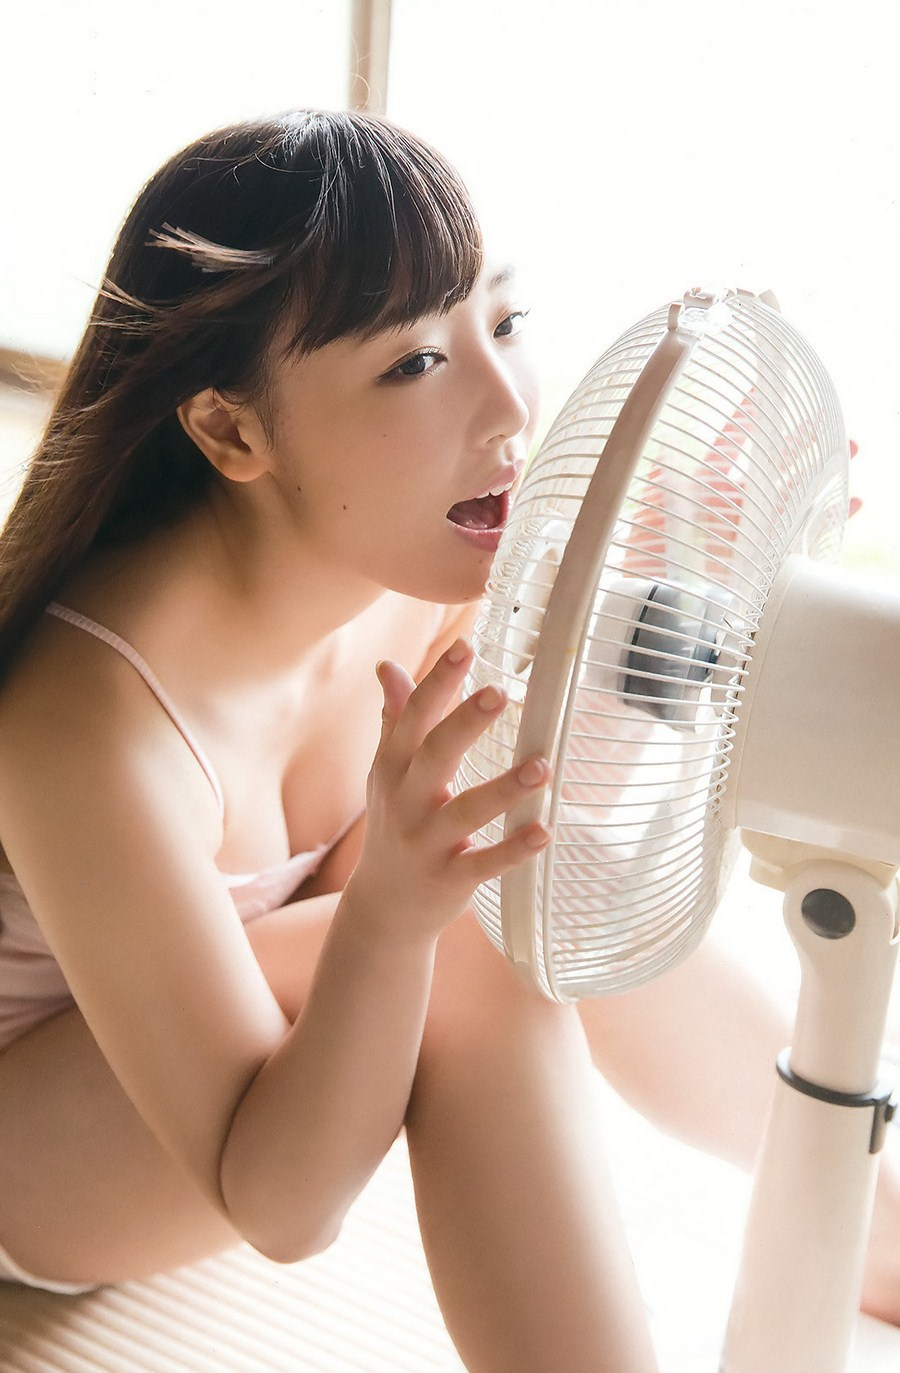 Fukumura Mizuki 譜久村聖 Morning Musume, Young Gangan Magazine No.10 2016 Special PhotoBook Chapter One